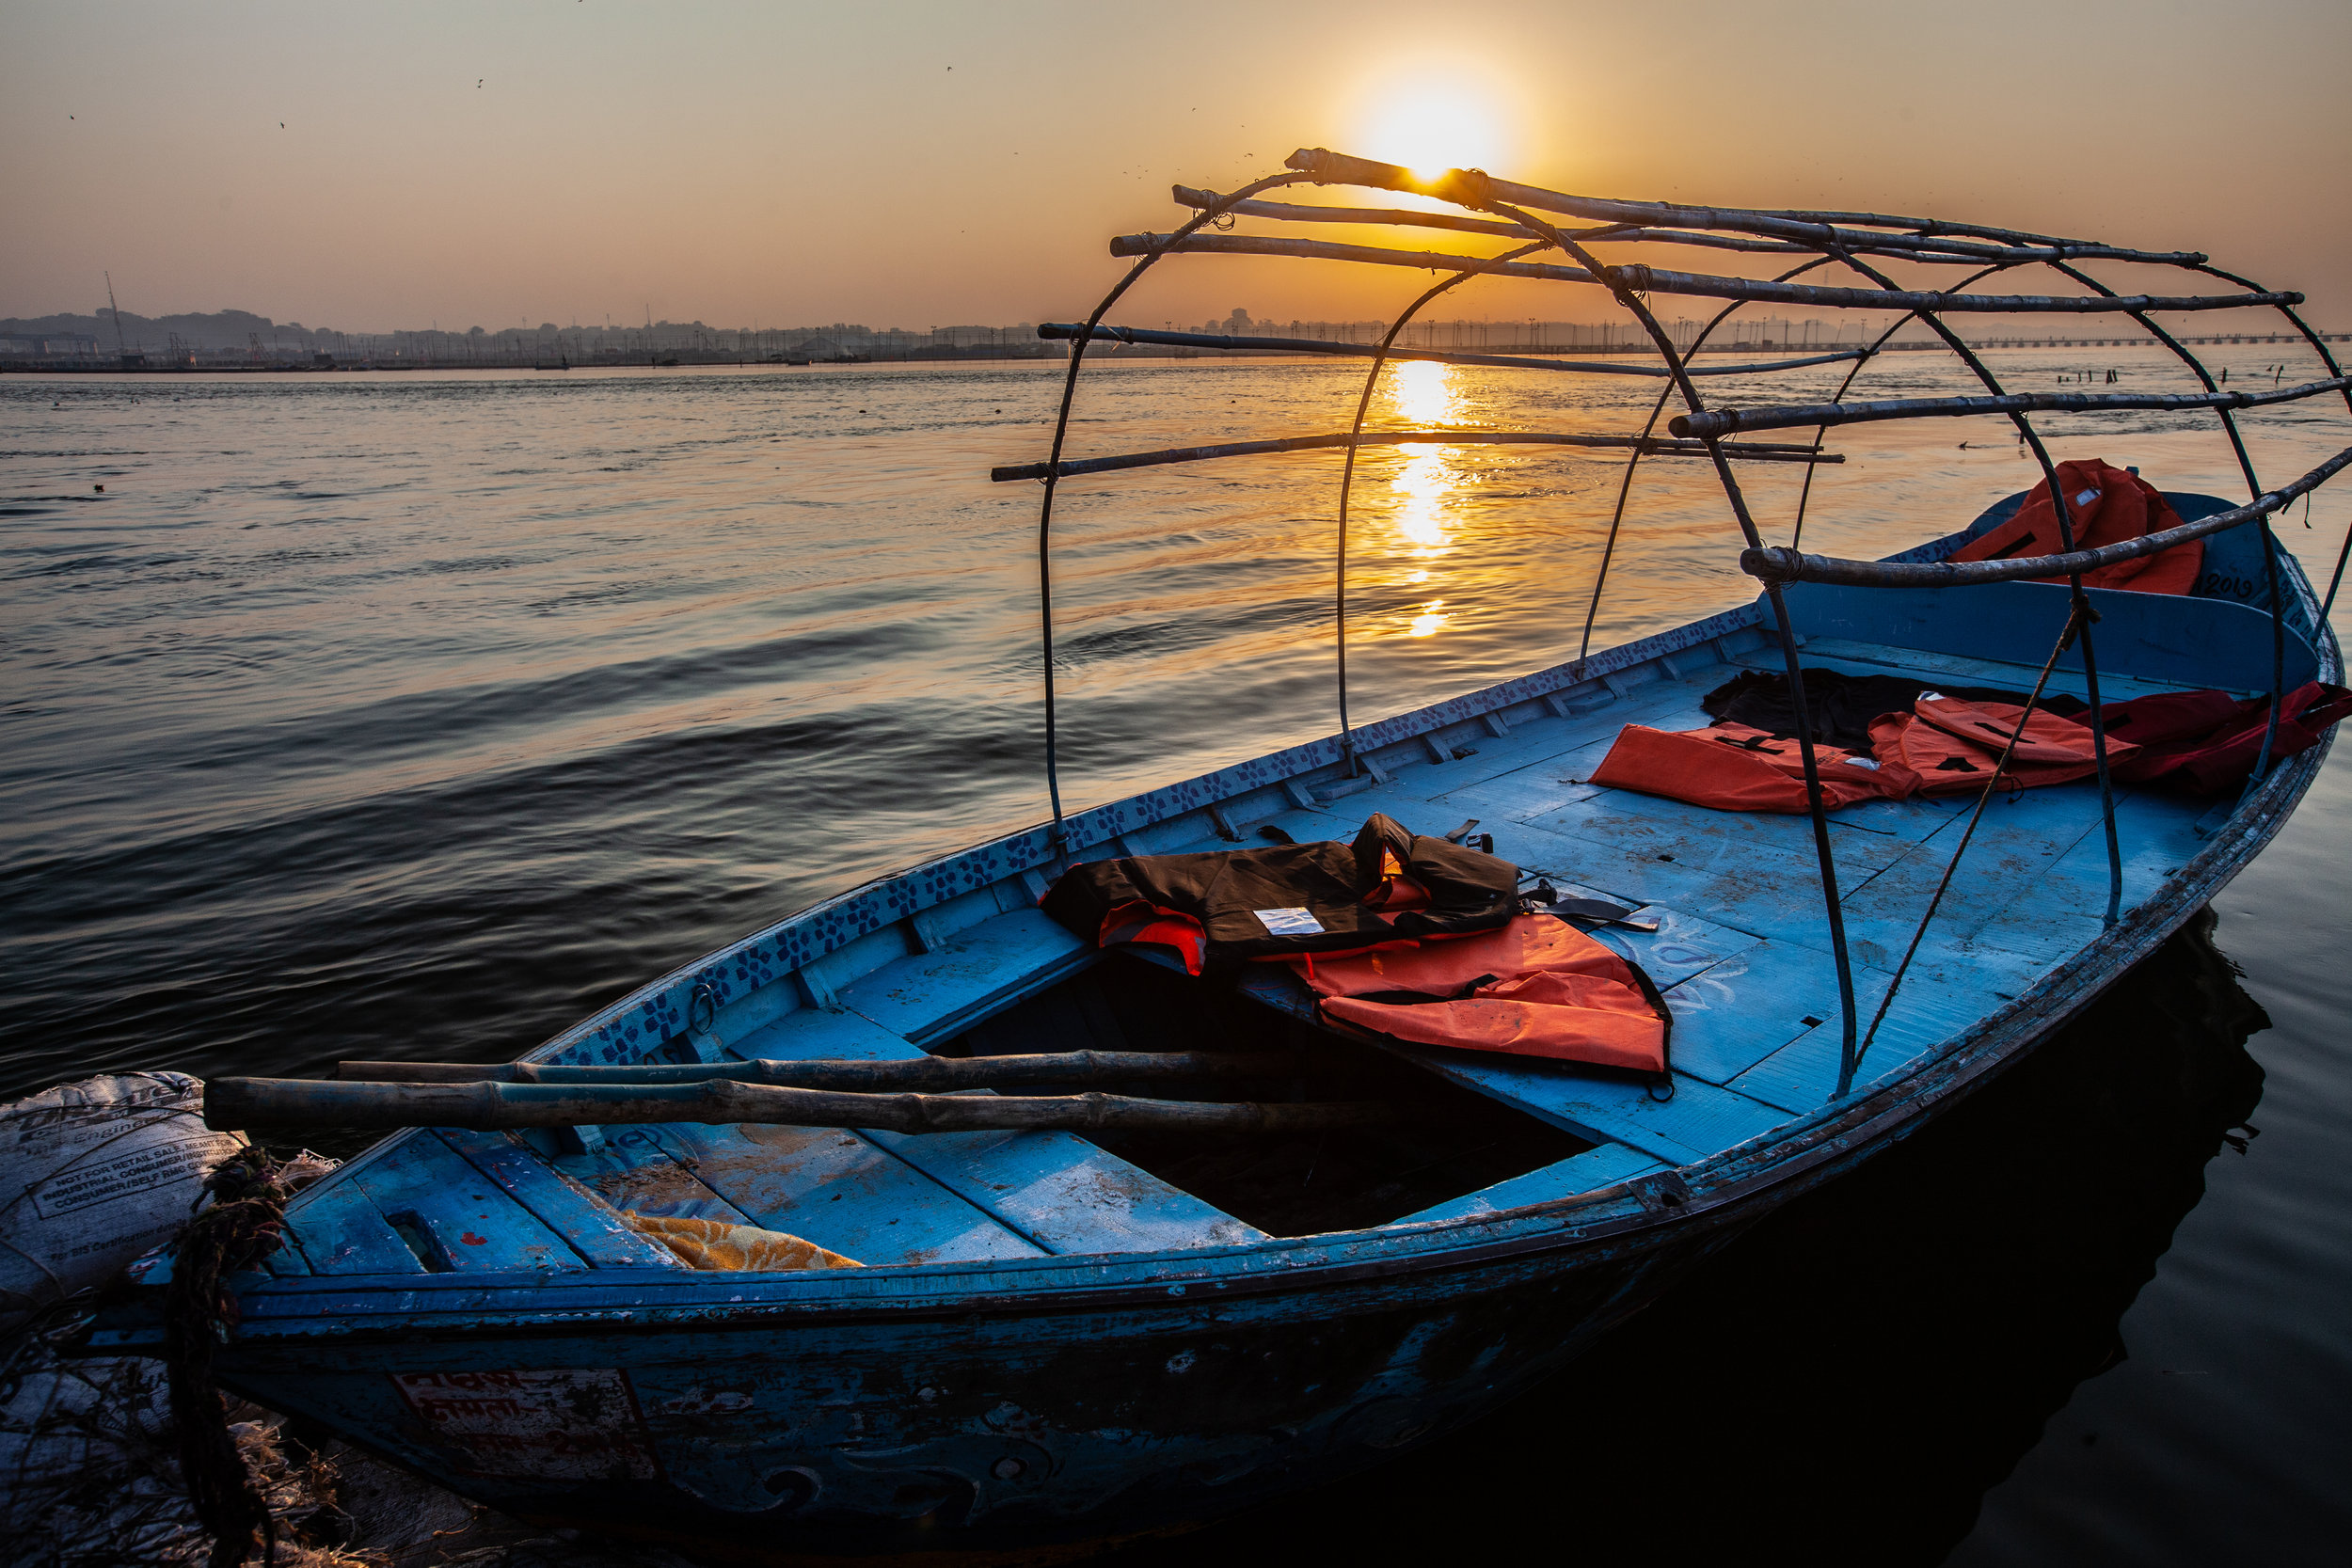 Sunrise on the Ganga in the Kumbha Mela